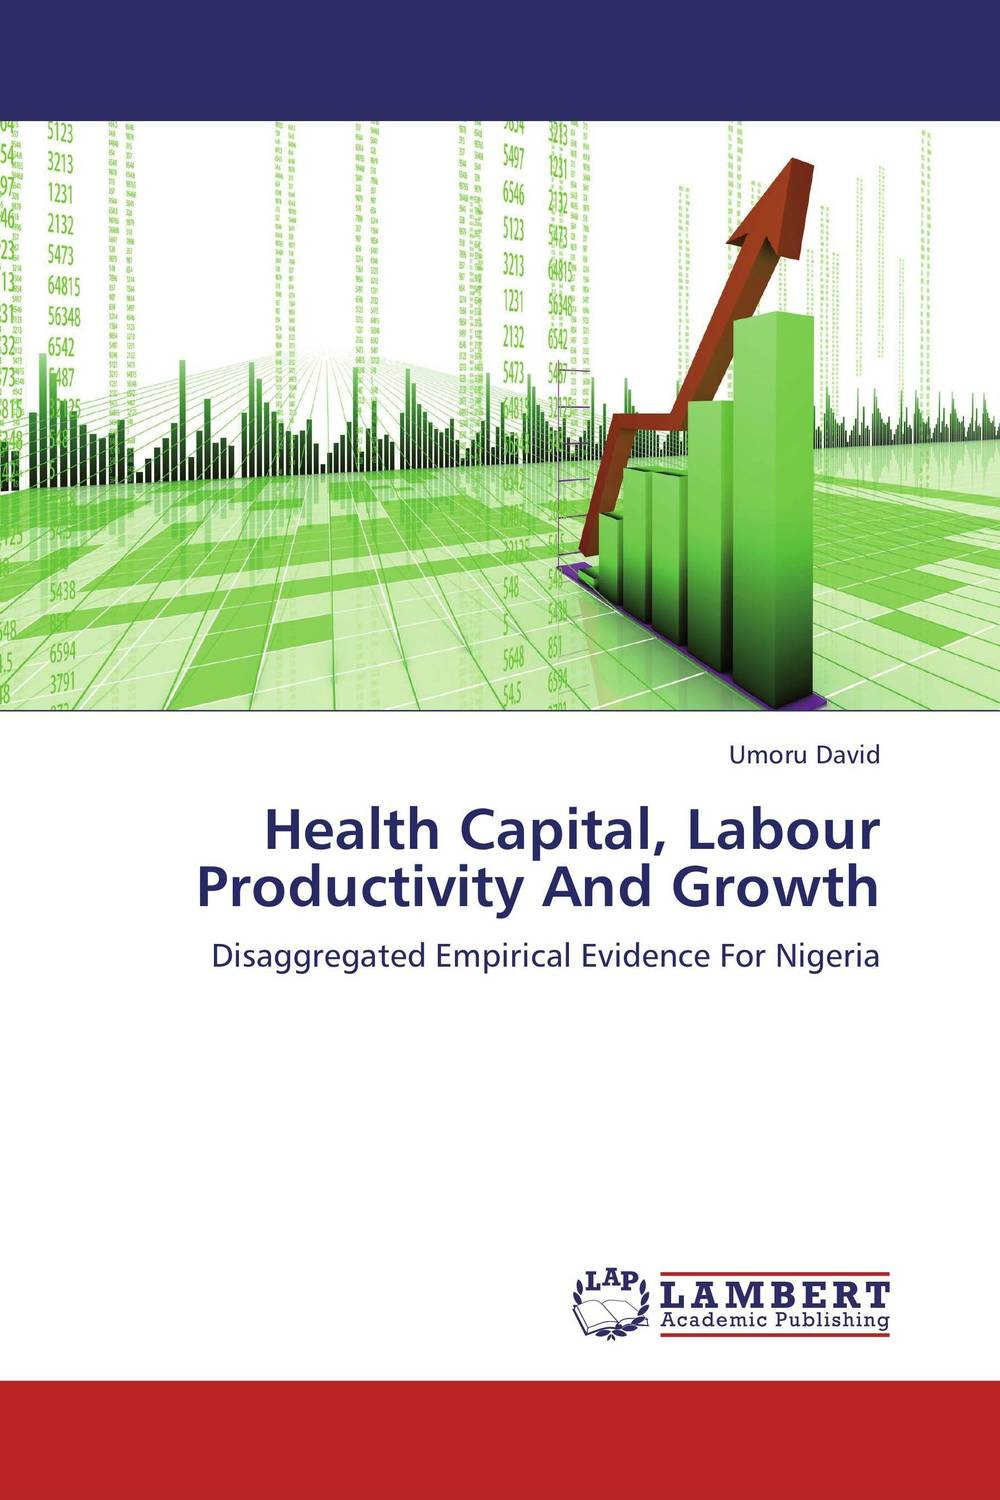 Health Capital, Labour Productivity And Growth